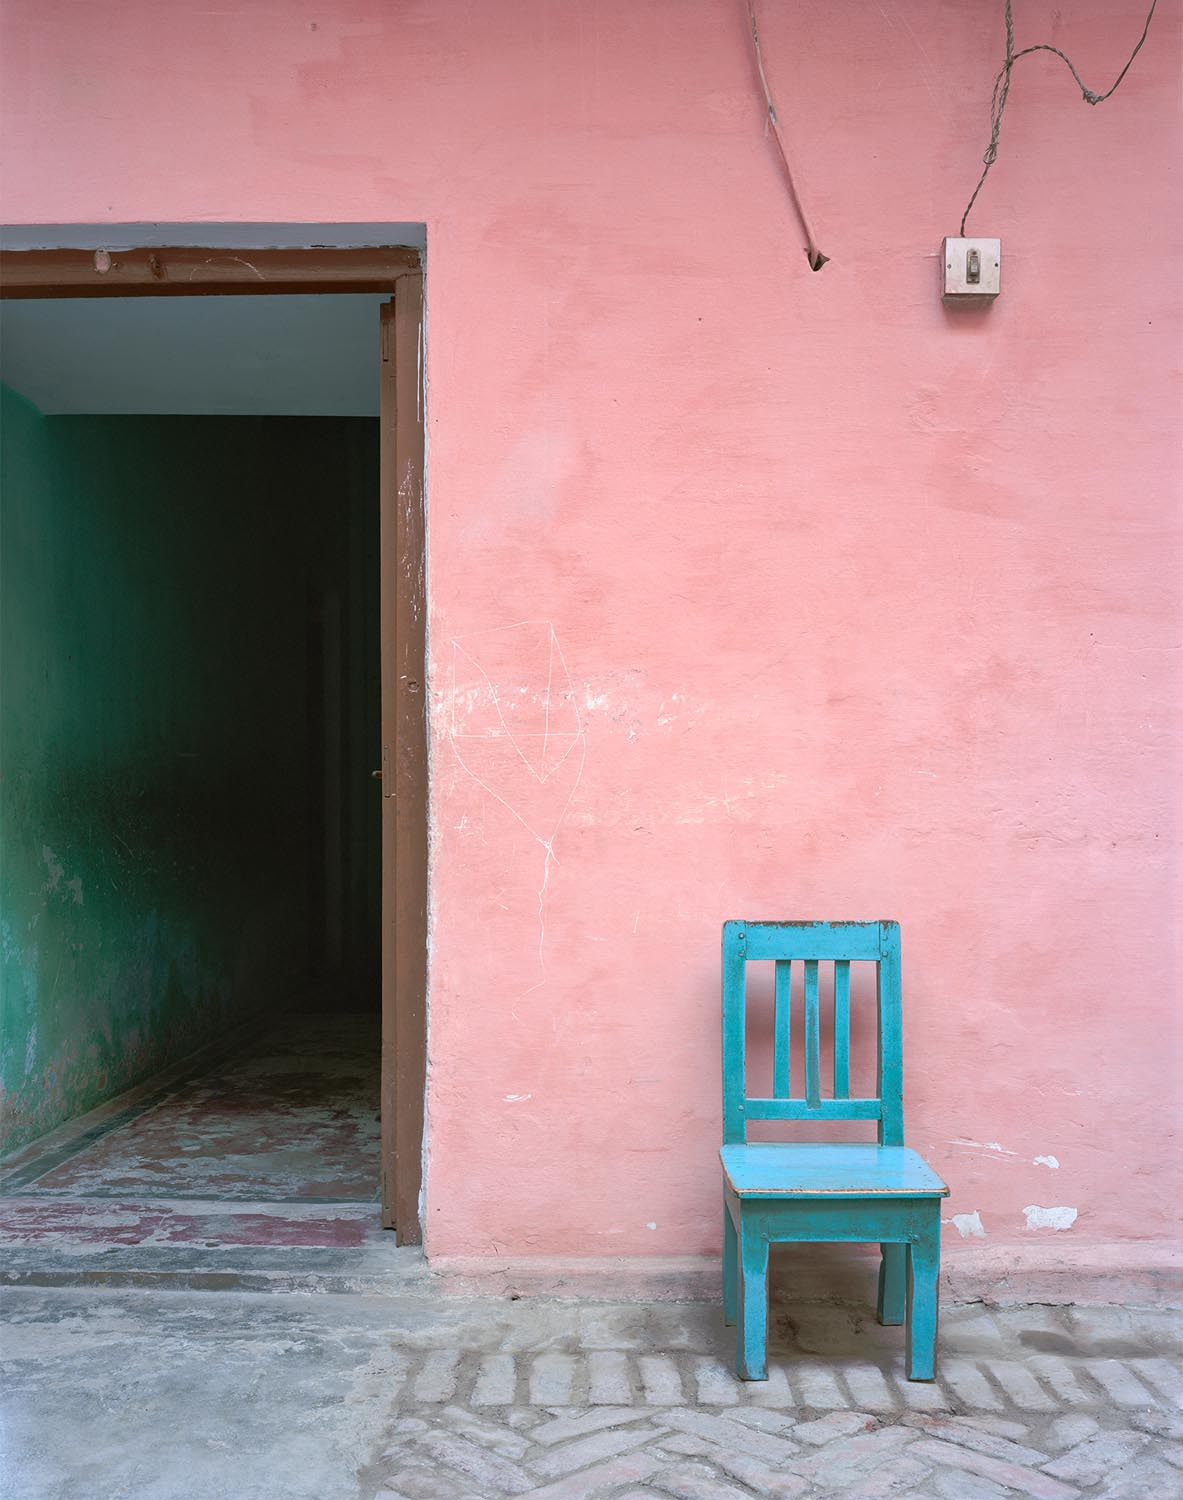 a-pink-dress-untitled-blue-chair-2012